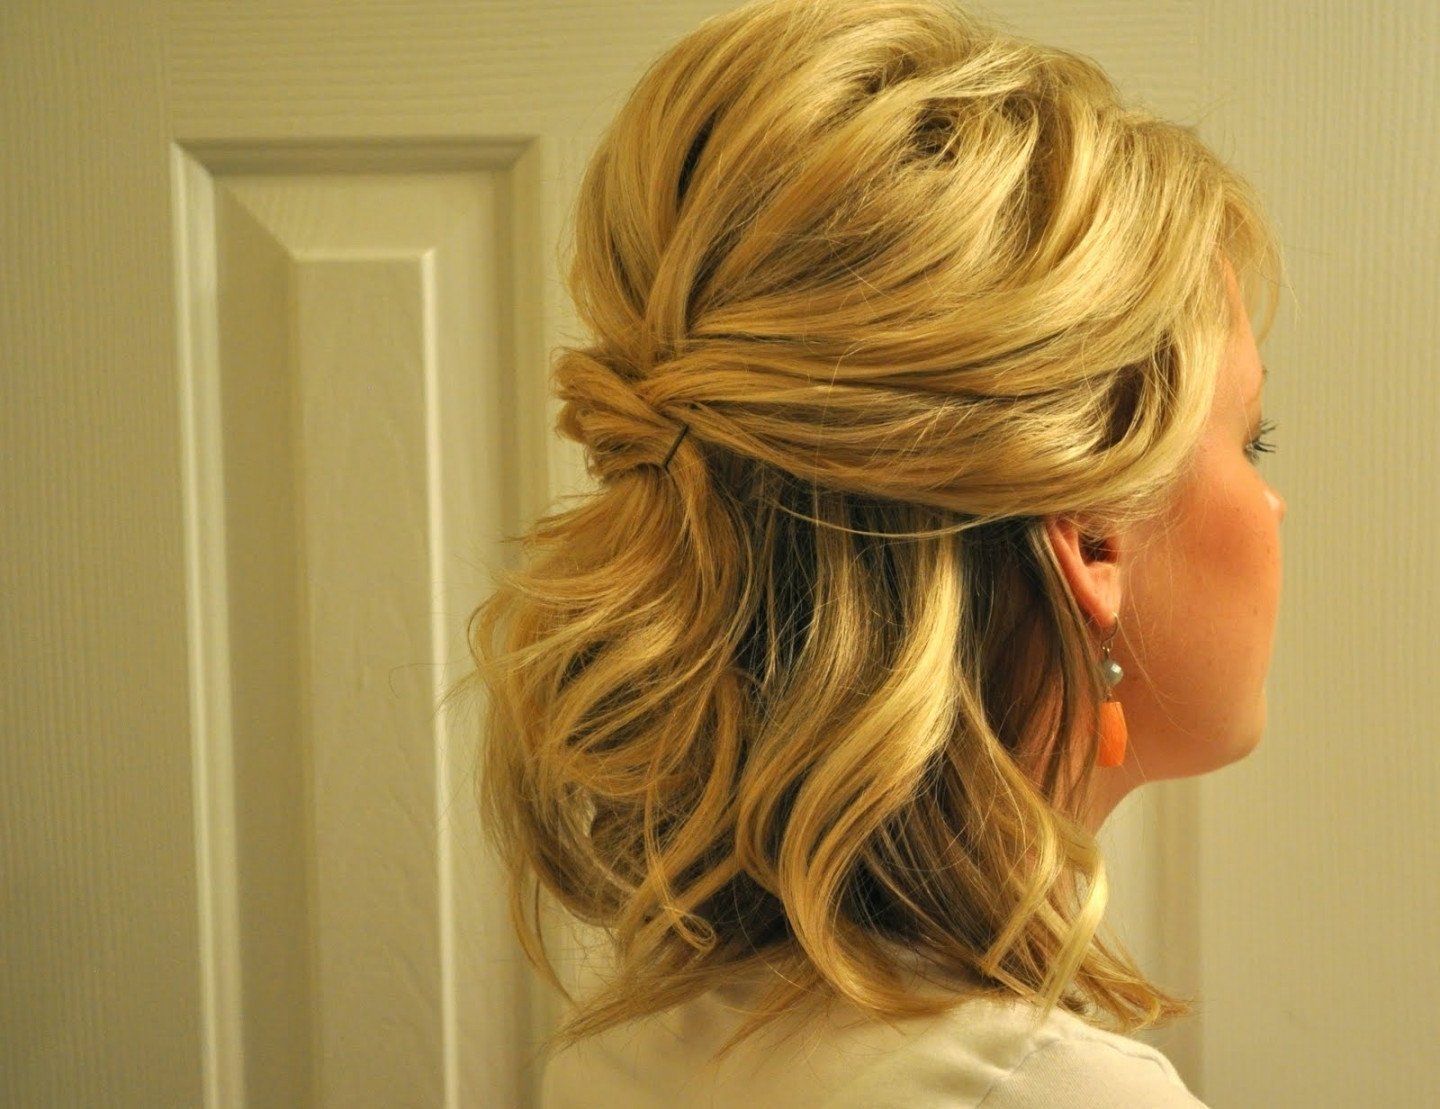 15 Best Of Half Updo Hairstyles For Mother Of The Bride